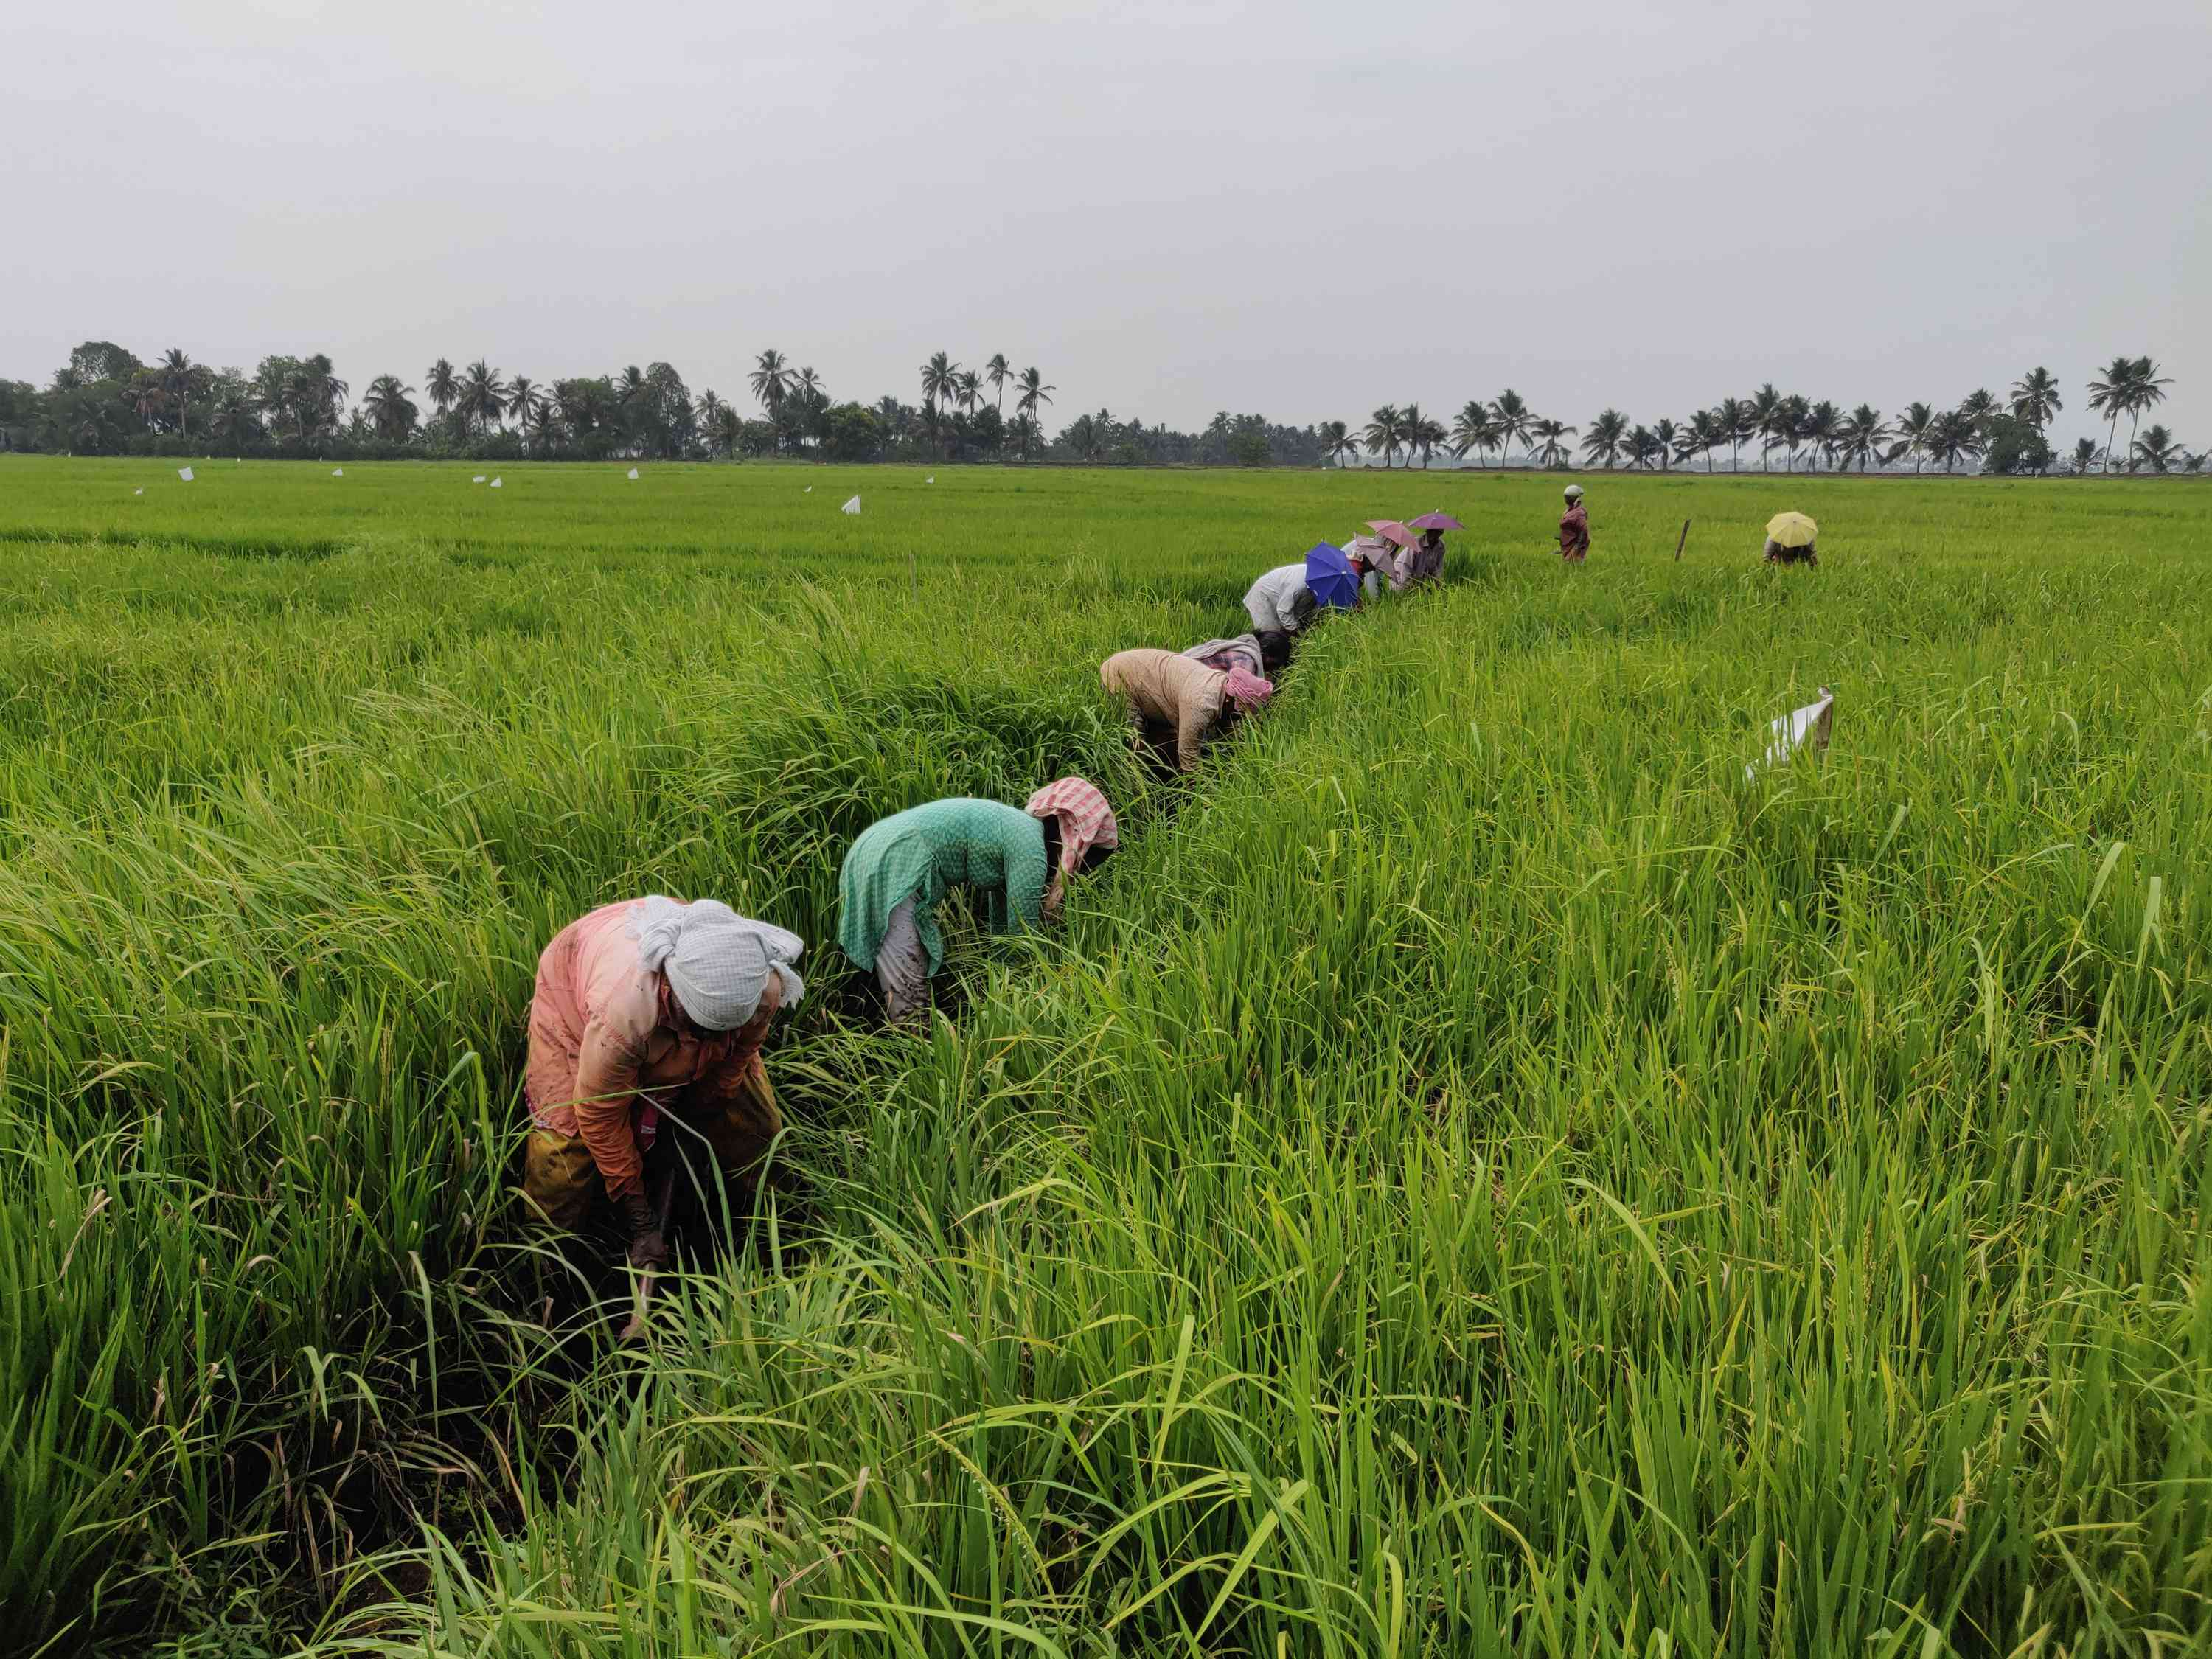 Farm labourers tend to a rice field in Kuttanad. Photo credit: TA Ameerudheen